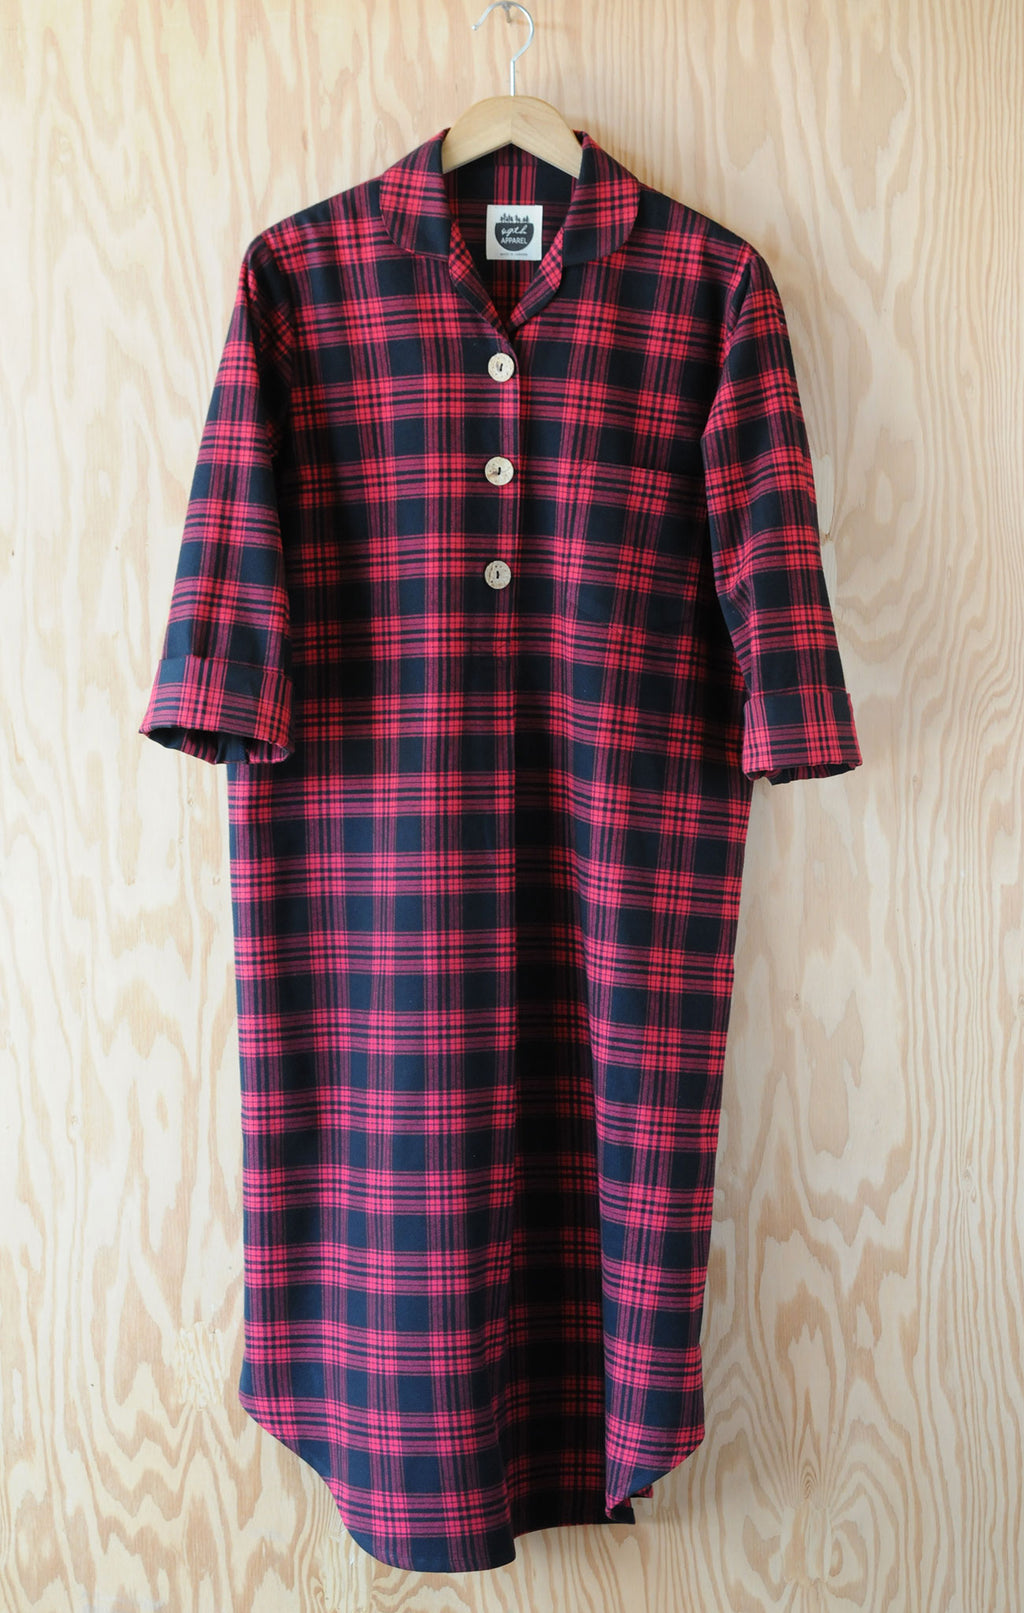 Emilia Nightshirt - Heritage Plaid Red Flannel